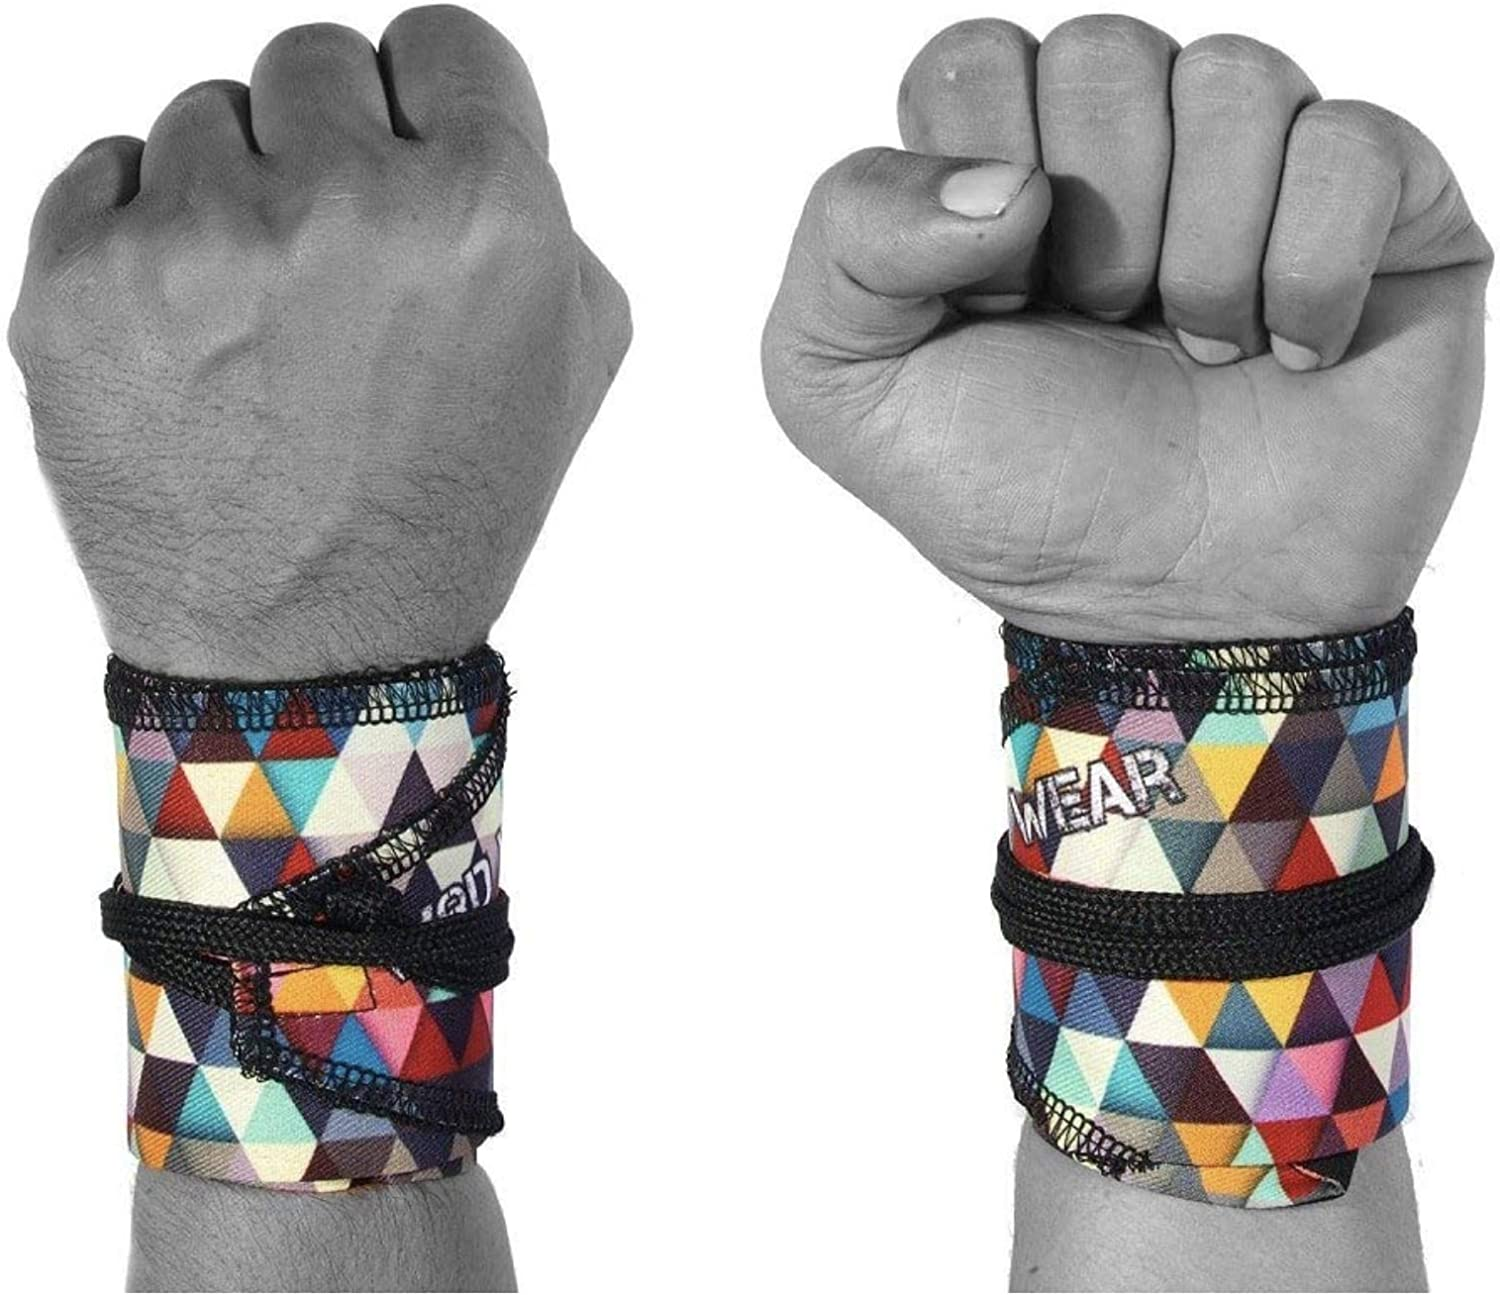 Cross Training Bodybuilding Strength Training Olympic Weightlifting Yoga Support One Size Fits All WOD Wear Wrist Wraps for Powerlifting